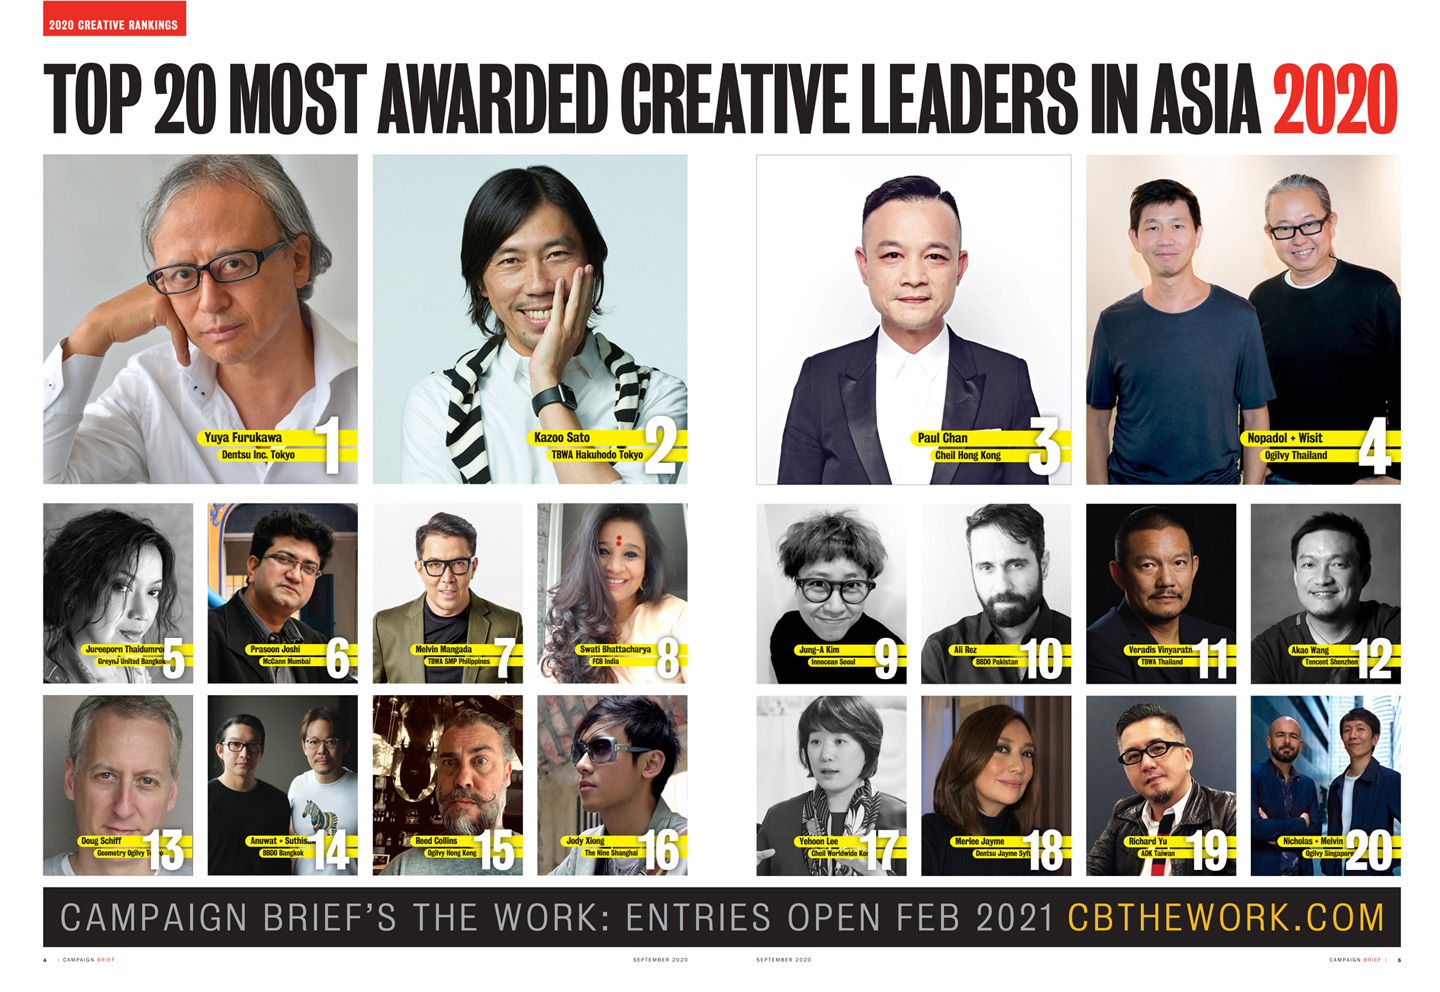 The Top 25 most awarded agencies in the 2020 Campaign Brief Asia Creative Rankings + the Top 20 most awarded creative leaders in Asia